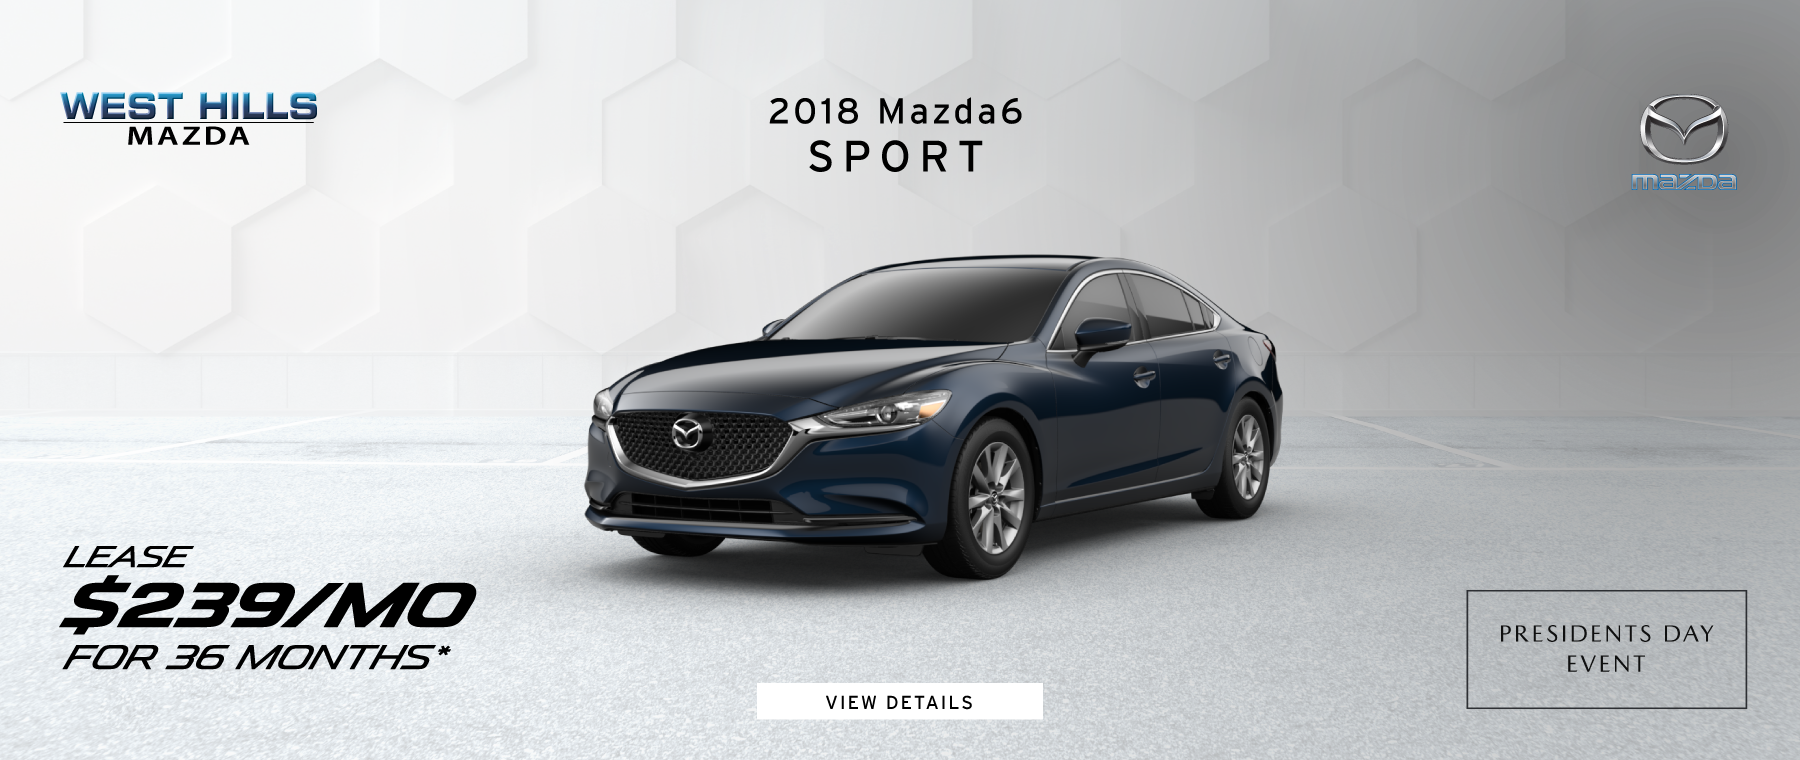 2018 Mazda6 Sport  $239/mo. for 36 mos.* *Valid on 2018 Mazda6 Sport. $239 per month for 36 months. $2,995 due at lease signing; includes a $595 acquisition fee. Valid on VIN: JM1GL1UM7J1333073. MSRP is $23,895. No security deposit with approved credit. Lease for well qualified buyers. Excludes taxes, title, and fees. 36 monthly payments required. Not all lessees will qualify for lowest payment through participating lender. Residency restrictions apply. Lessee responsible for registration, insurance, maintenance, excess wear/tear & for mileage over 10,000 miles at $0.15/mile per year. Option to purchase at lease end. A negotiable dealer documentary service fee of up to $150 may be added to the sale price or capitalized cost. Offer Expires: 2/28/2019.